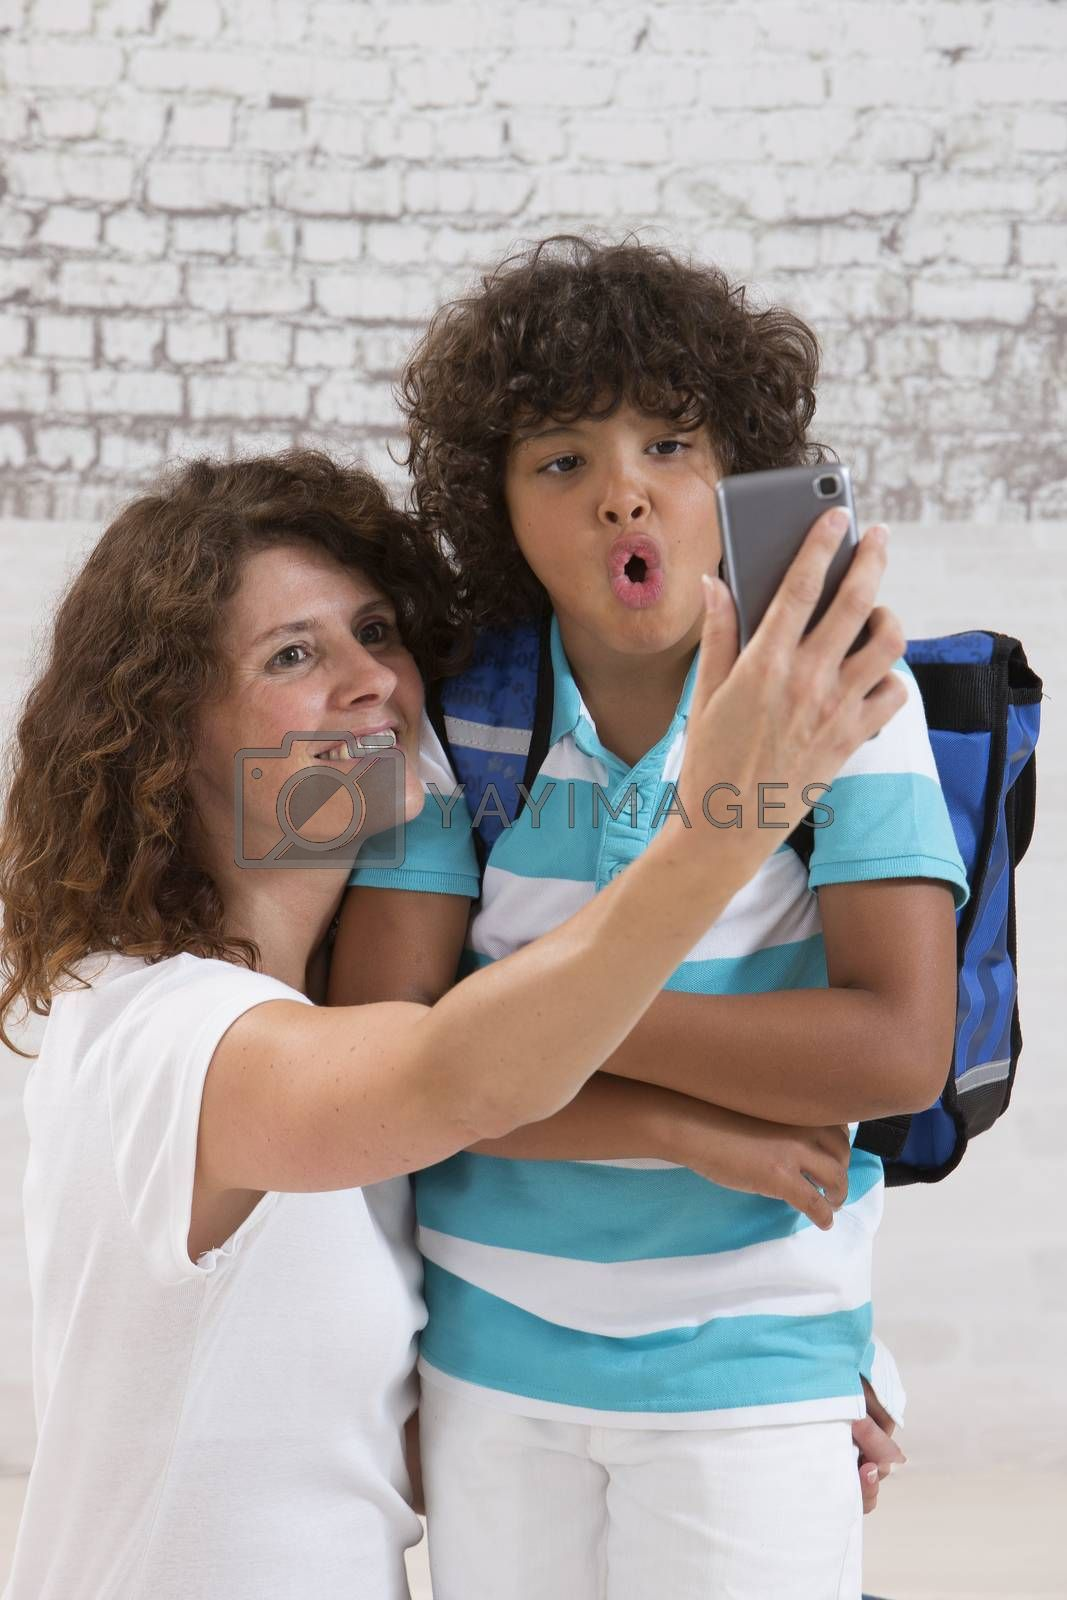 mother and sun are doing selfie by mobile phone before first day of school